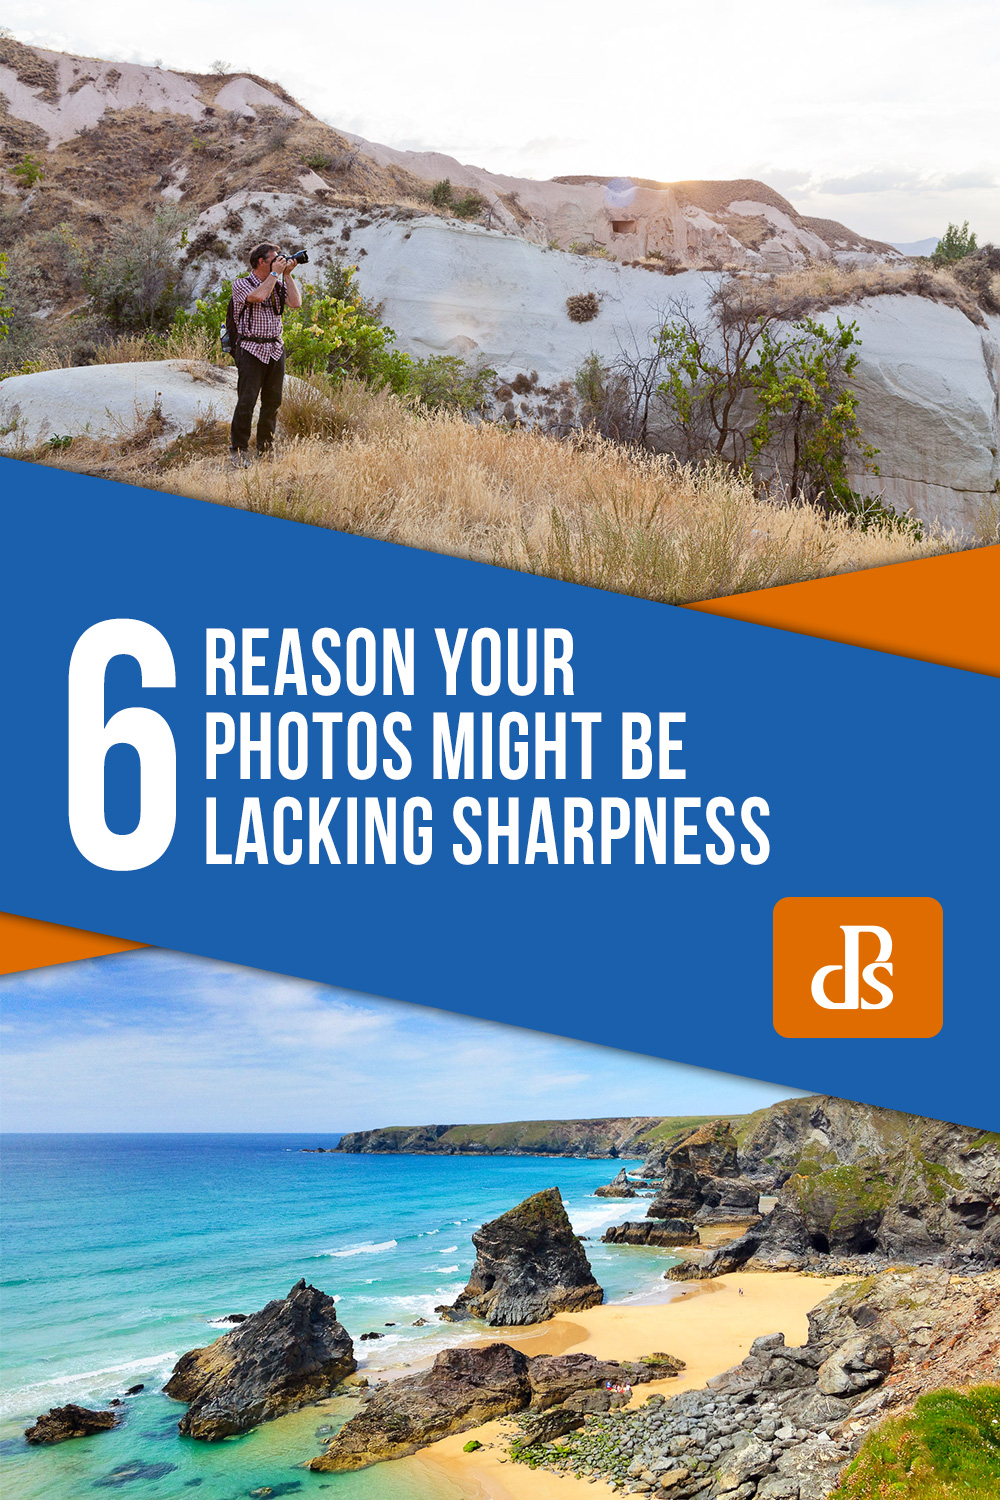 Reasons-Your-Photos-Might-Be-Lacking-Sharpness